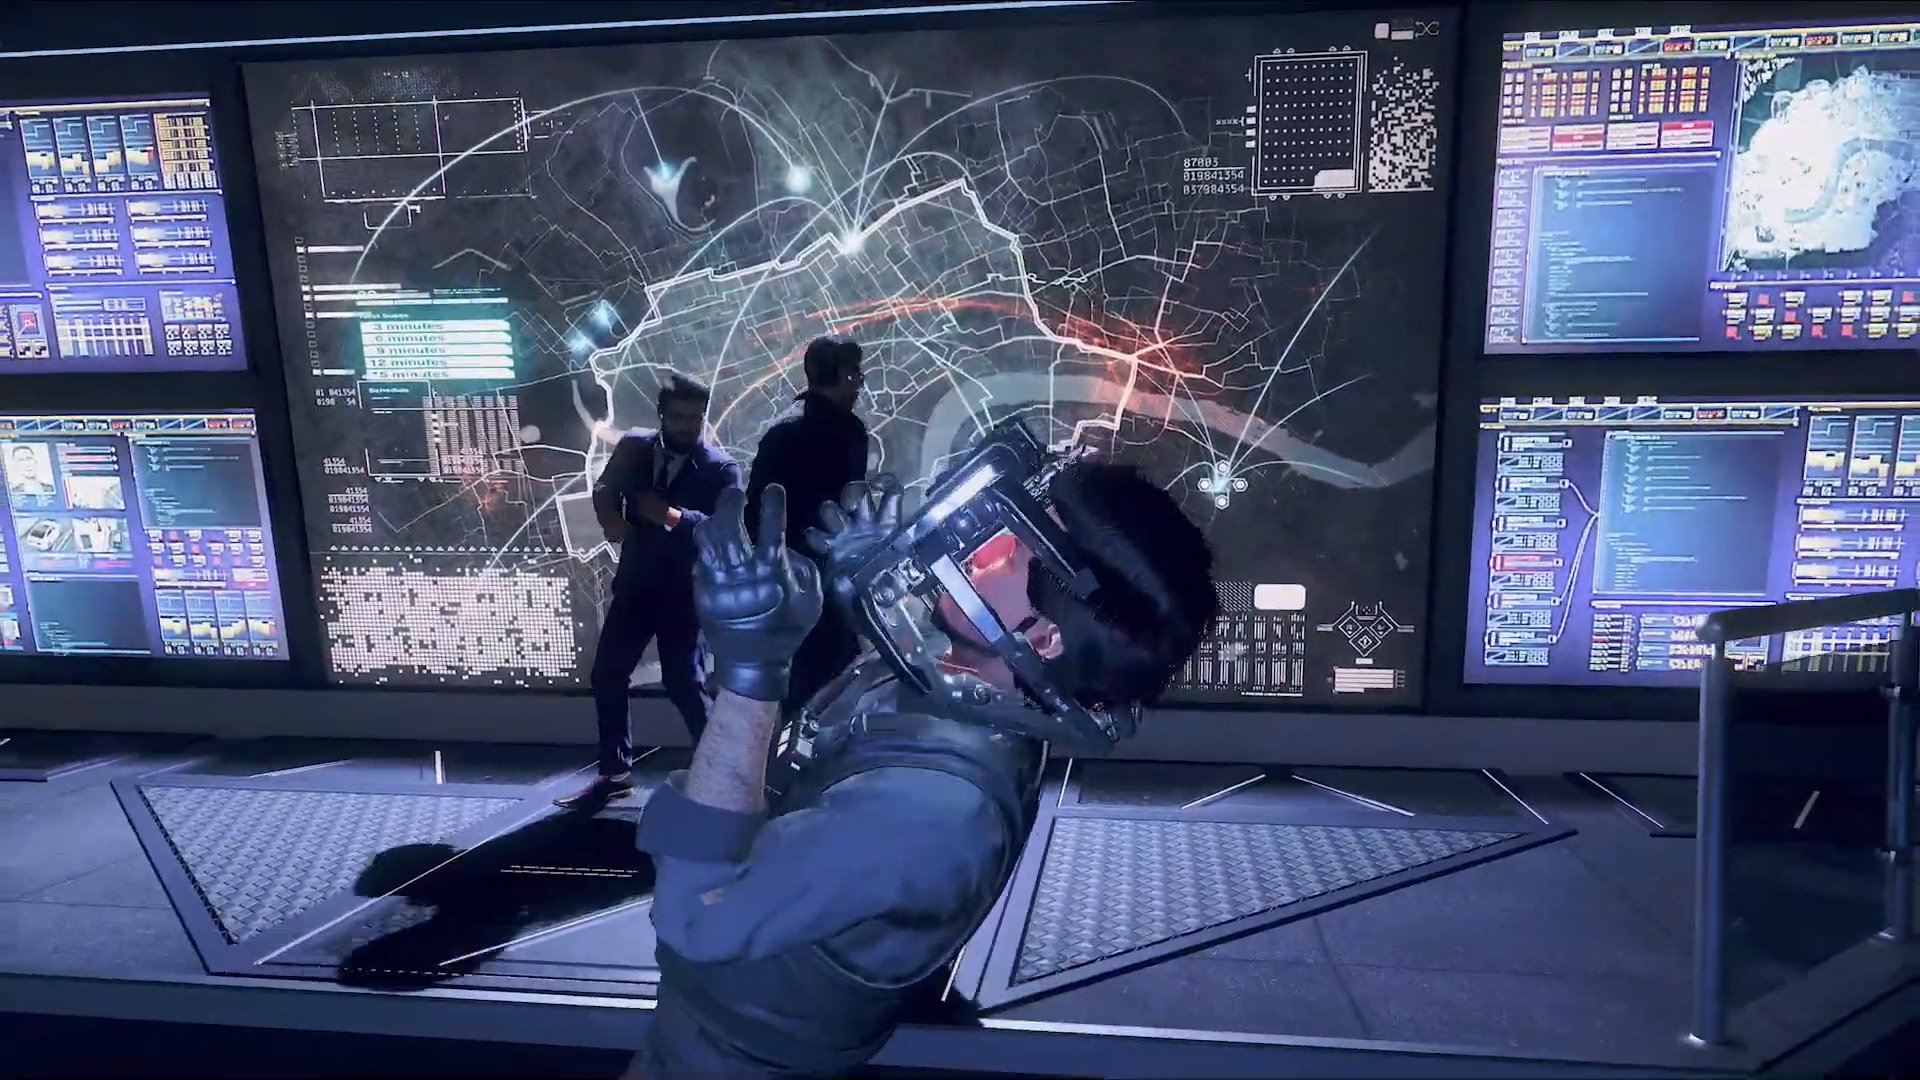 watch dogs legion gameplay demoed at ubisoft e3 2019